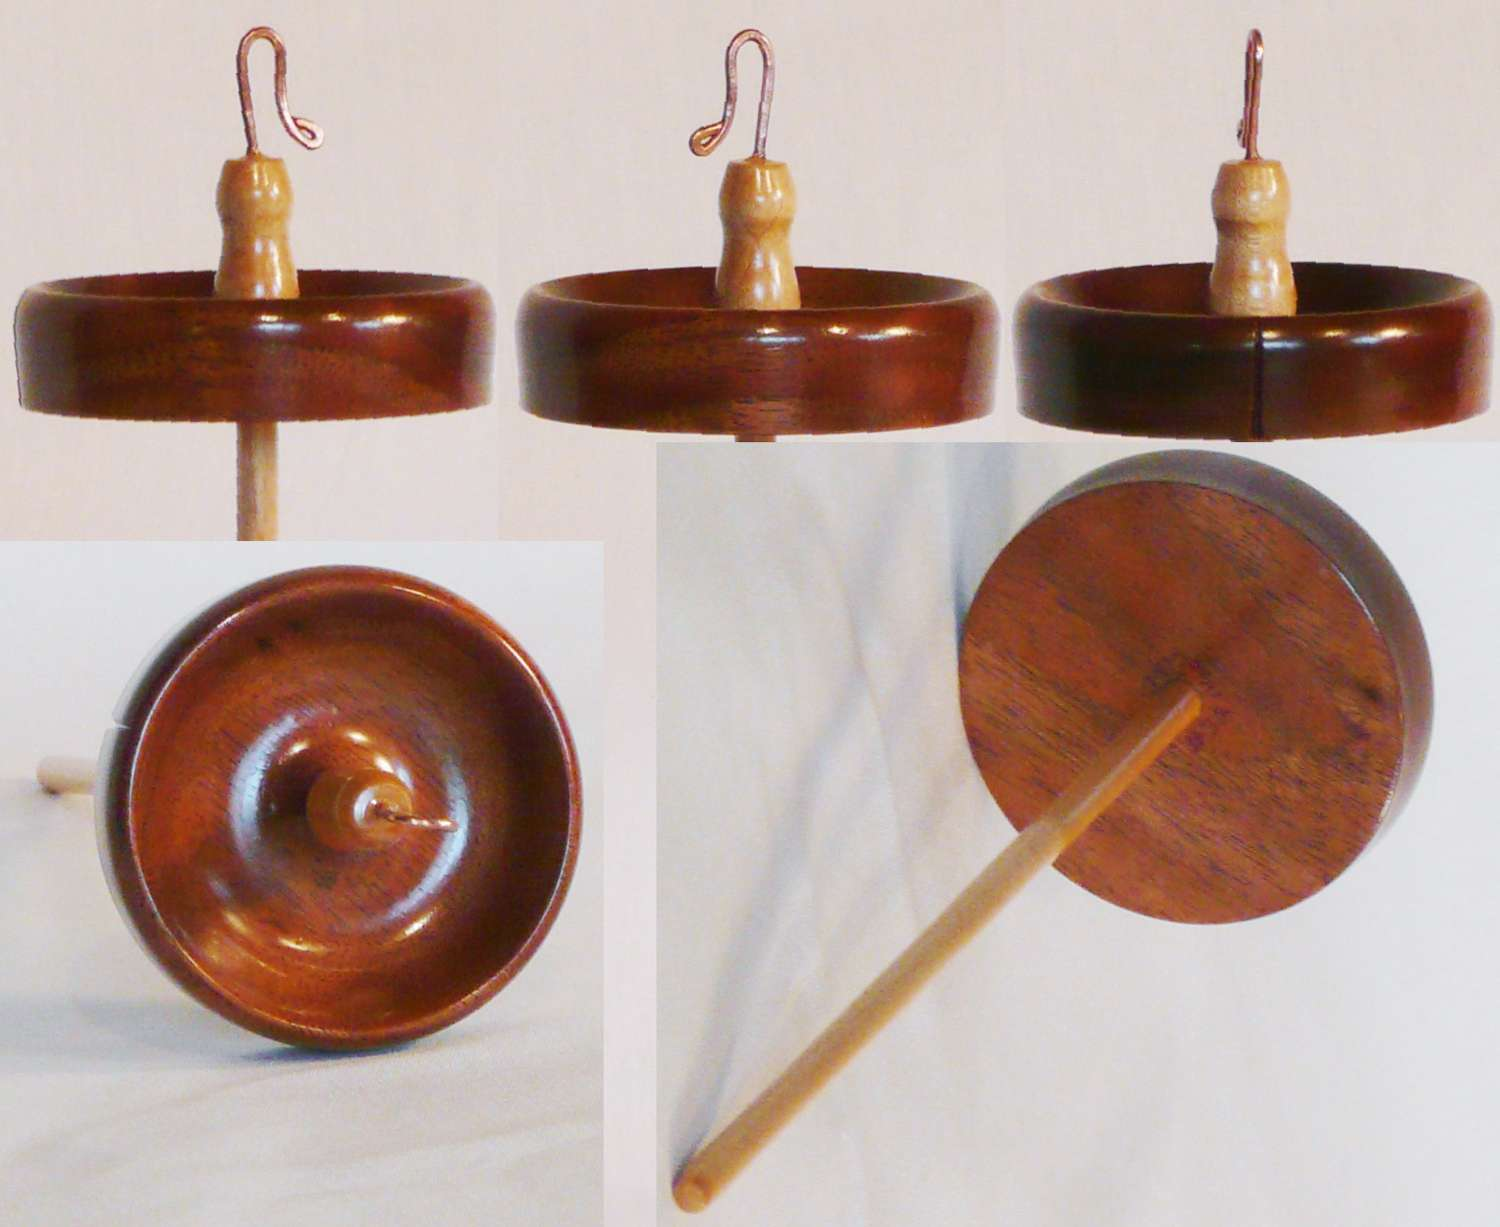 Walnut top whorl on maple shaft hand turned drop spindle by Cynthia Haney